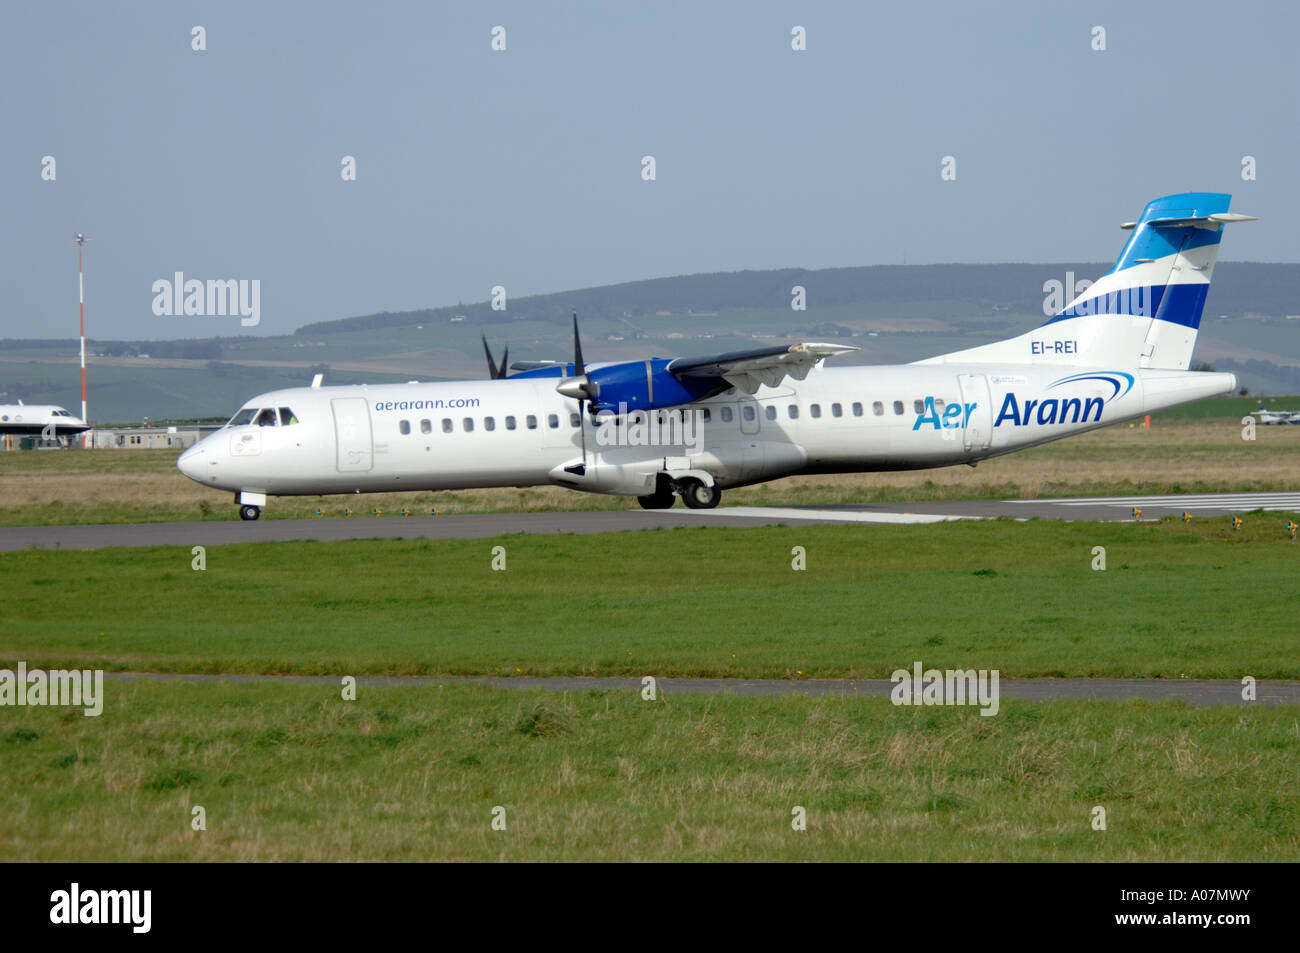 Aerospatiale -72-201ATR of Aer.Arann arriving at Inverness, Dalcross Airport. Scotland.  XAV 3986-379 - Stock Image